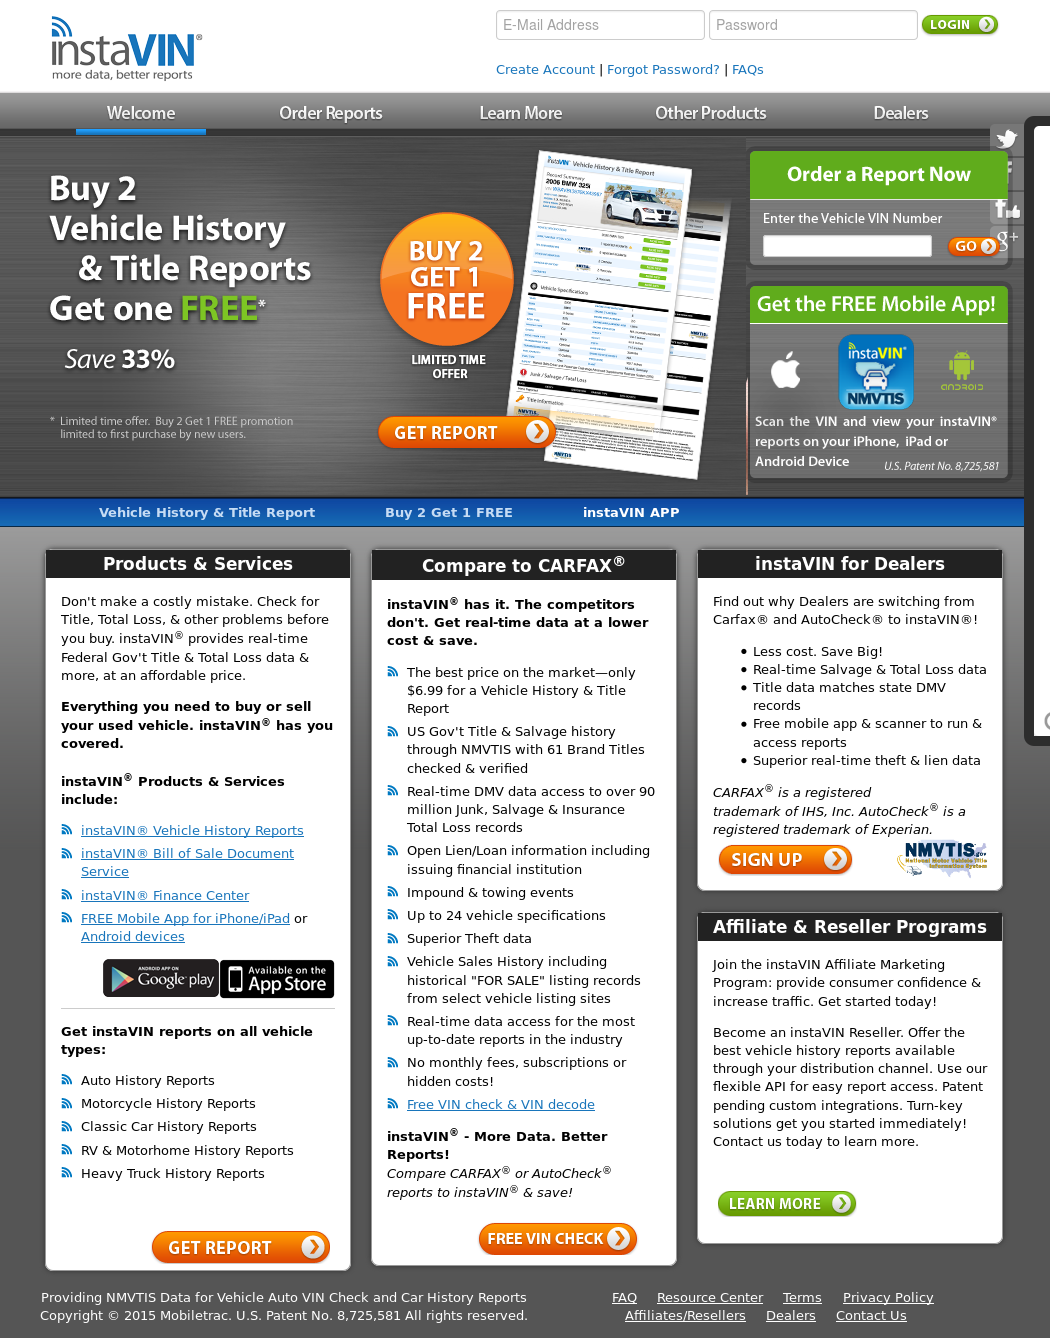 free motorcycle history report  instaVIN Competitors, Revenue and Employees - Owler Company Profile